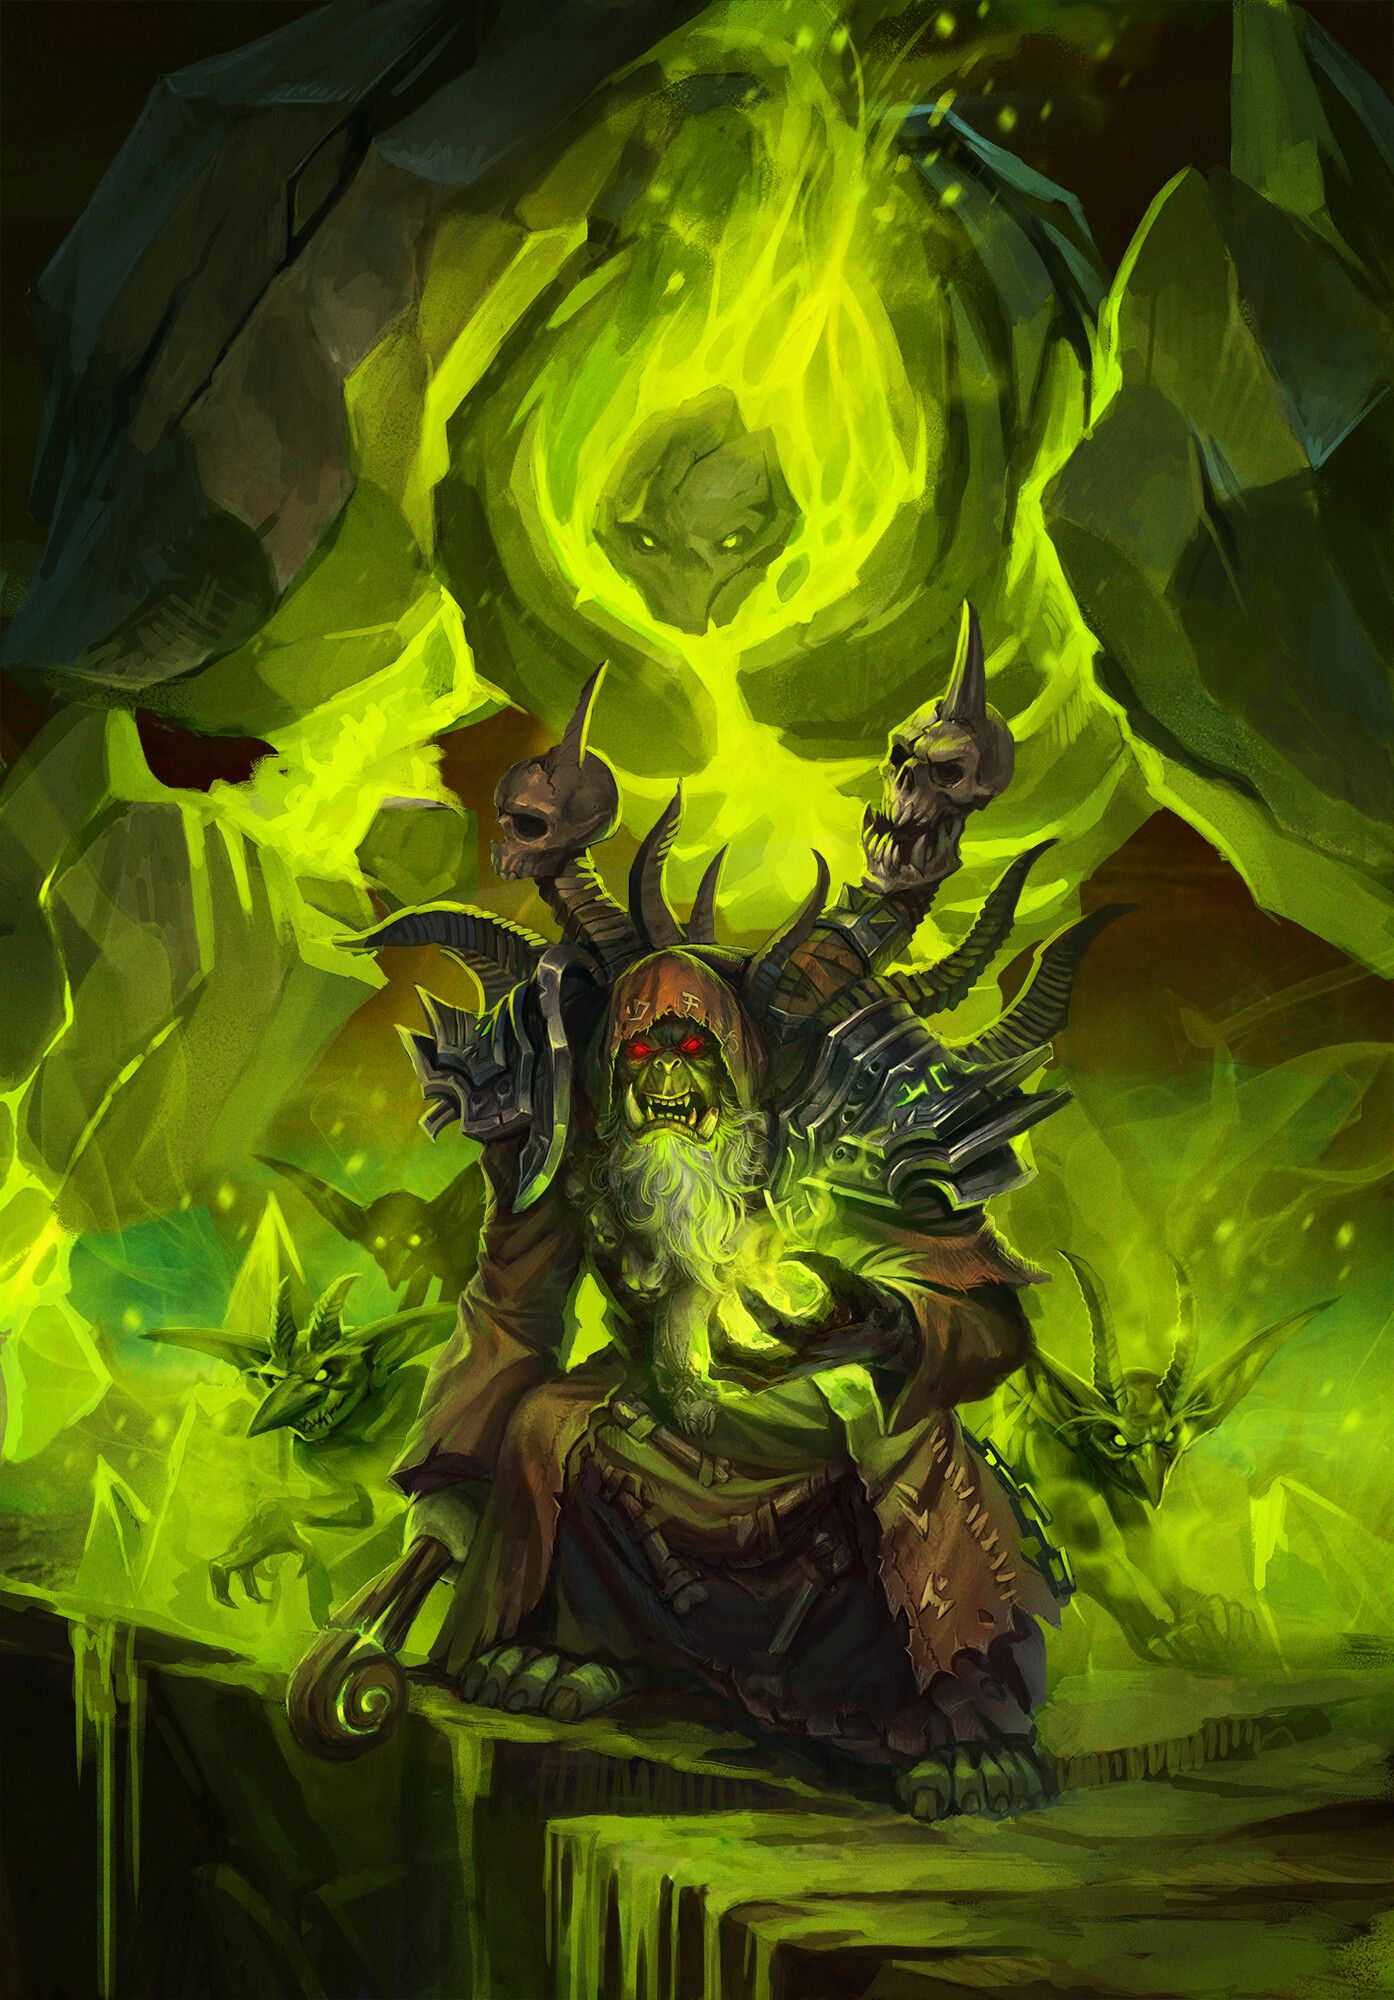 Gul Dan By Klaher Baklaheri Love The Universe Of Warcraft From An Early Age I Will Say More I Bec Warcraft Art World Of Warcraft World Of Warcraft Wallpaper